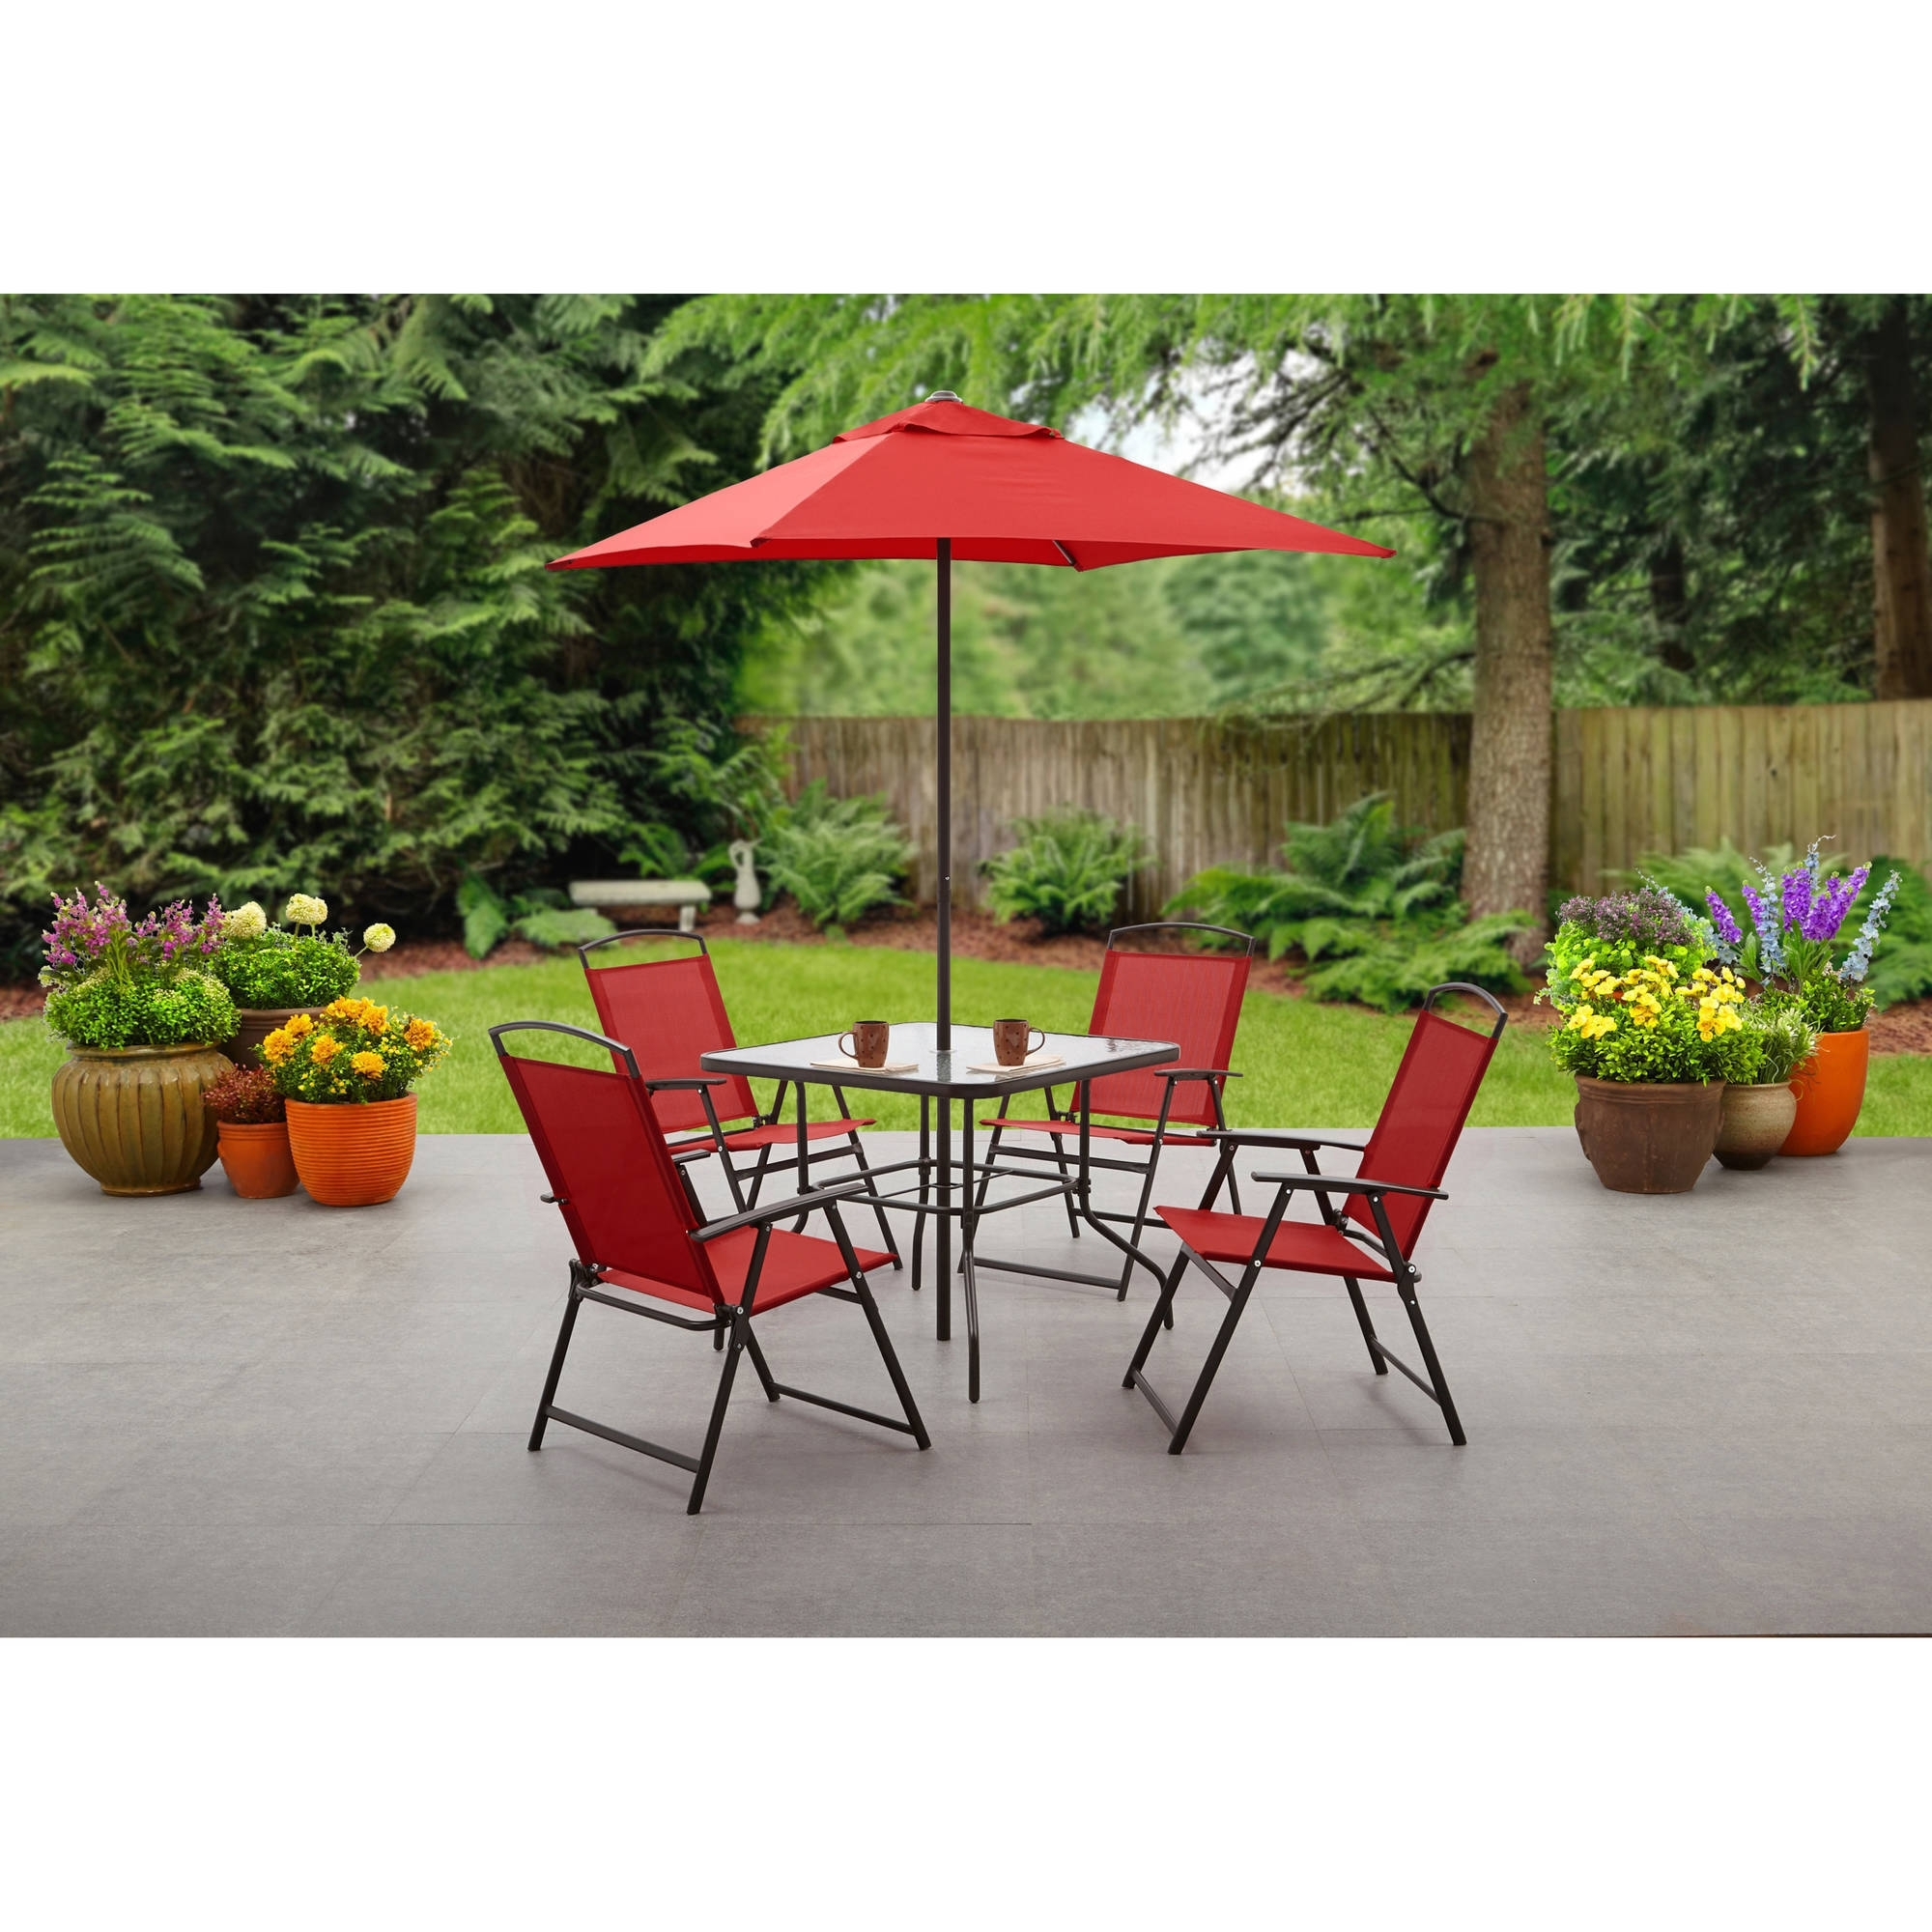 Newest Folding Dining Table And Chairs Sets With Regard To Mainstays Albany Lane 6 Piece Folding Dining Set, Multiple Colors (View 15 of 25)